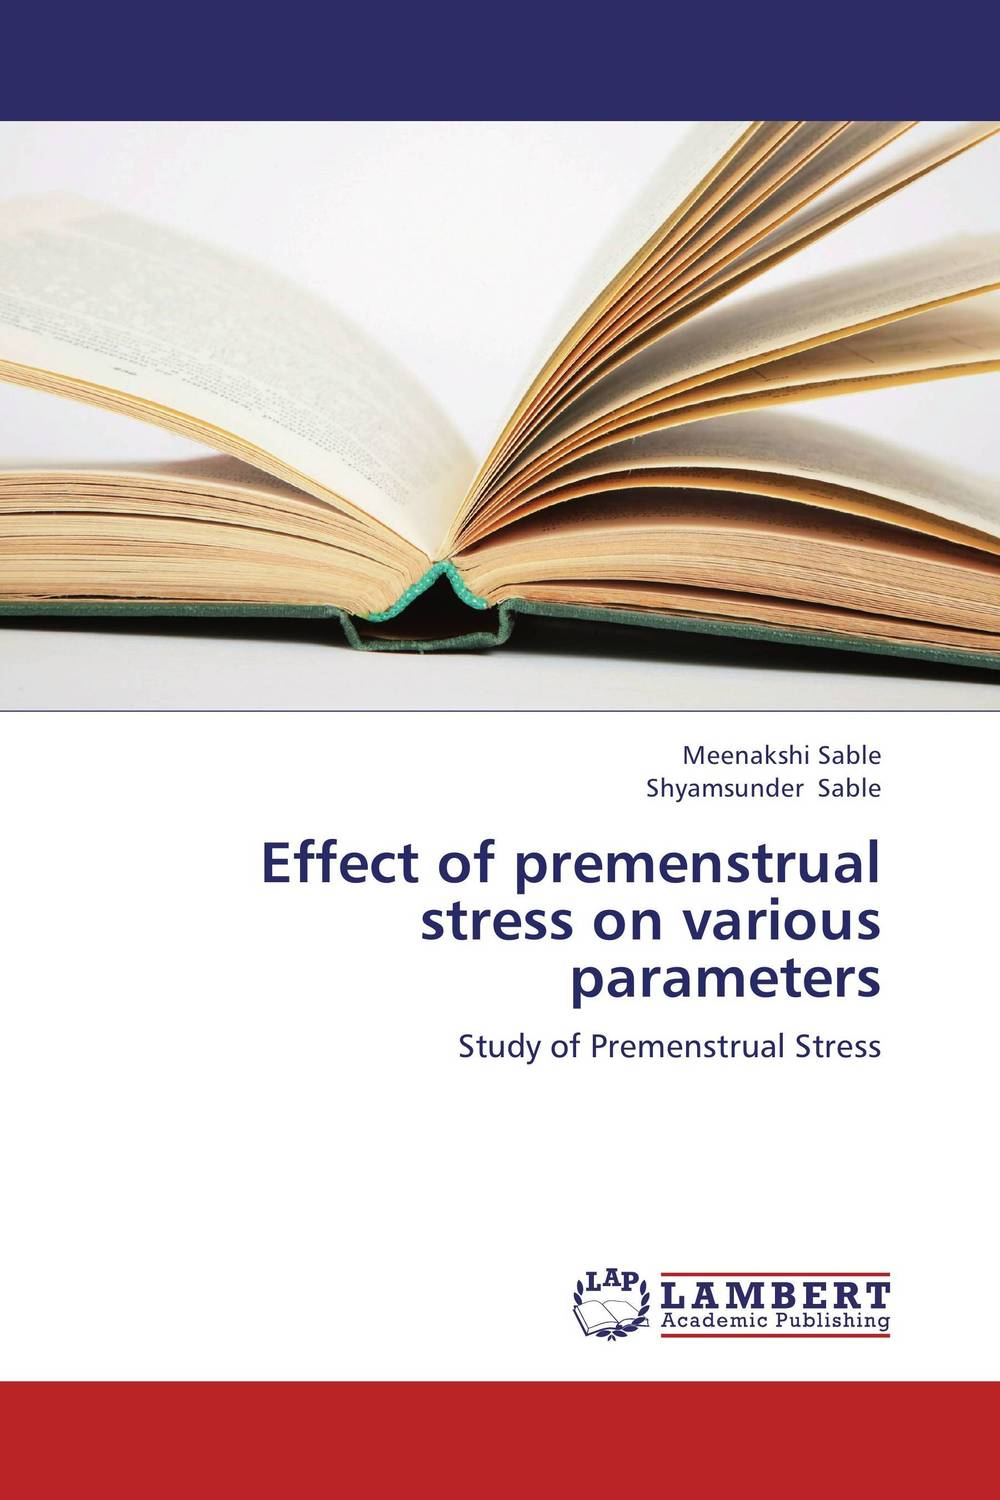 Effect of premenstrual stress on various parameters affair of state an